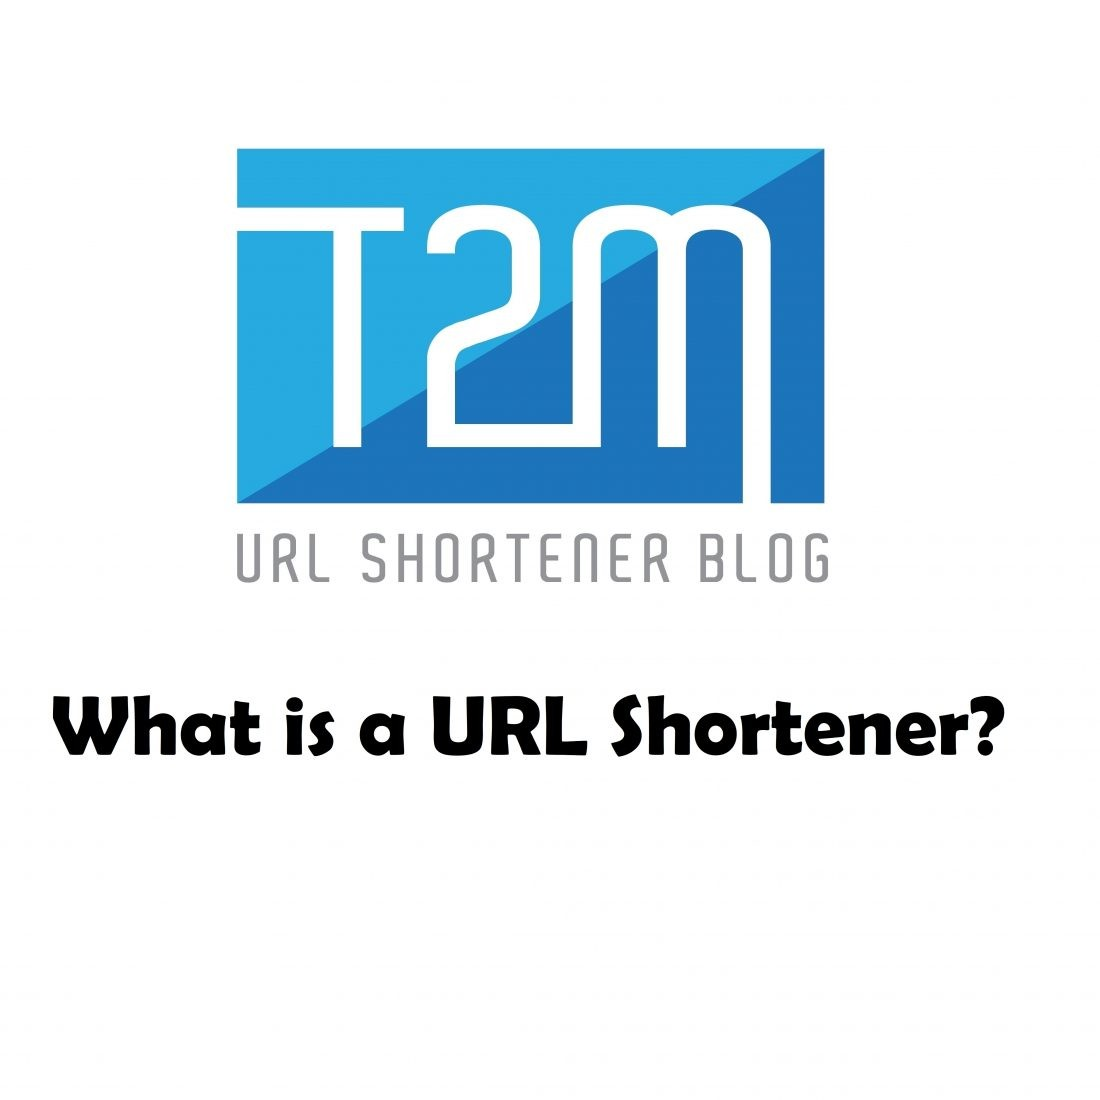 What is a URL Shortener?